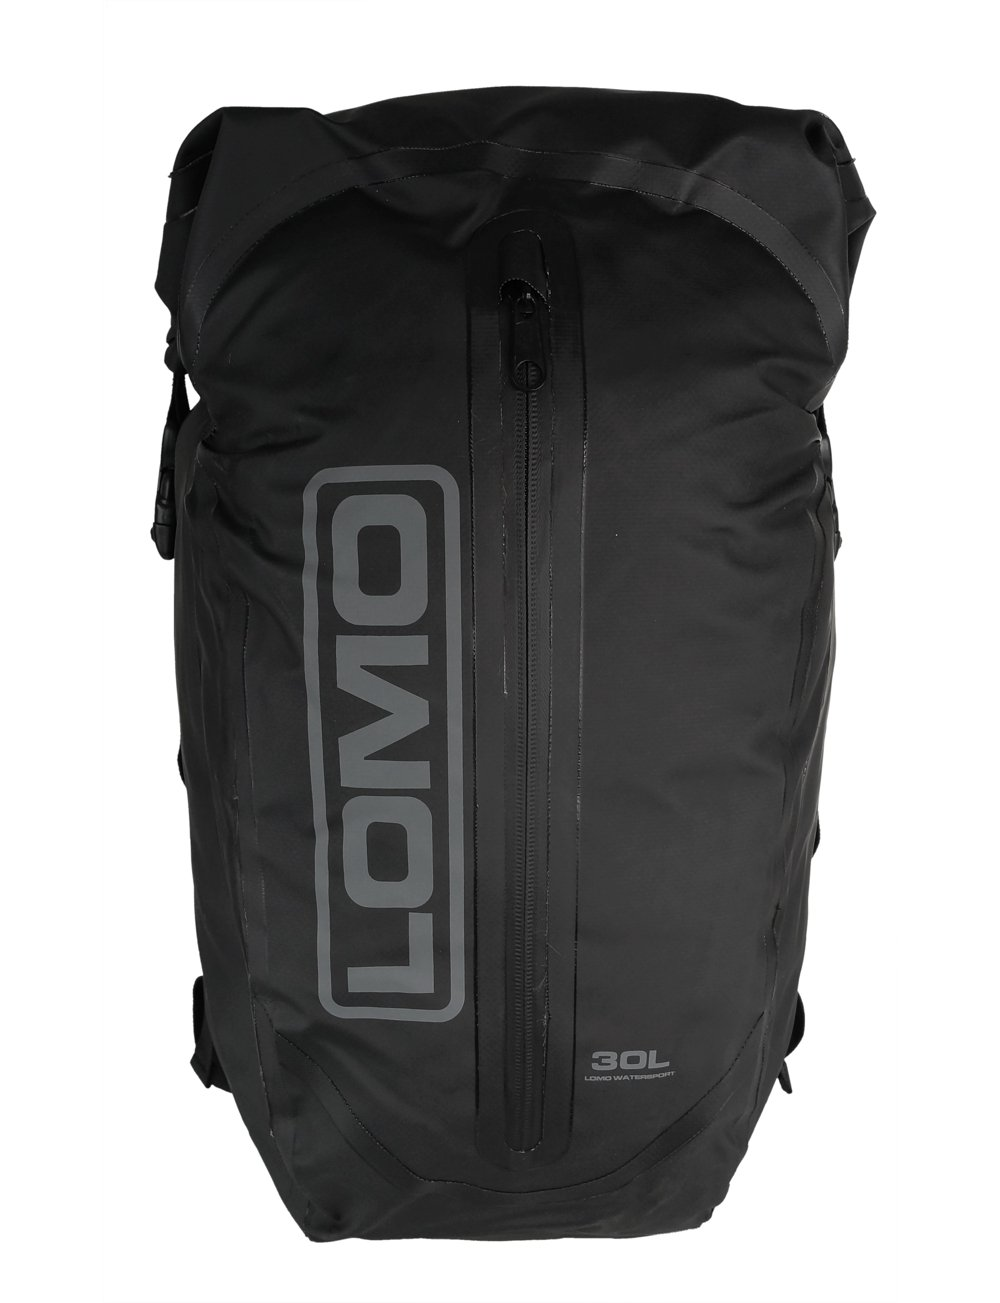 Lomo 30L Mochila Impermeable y waterproof